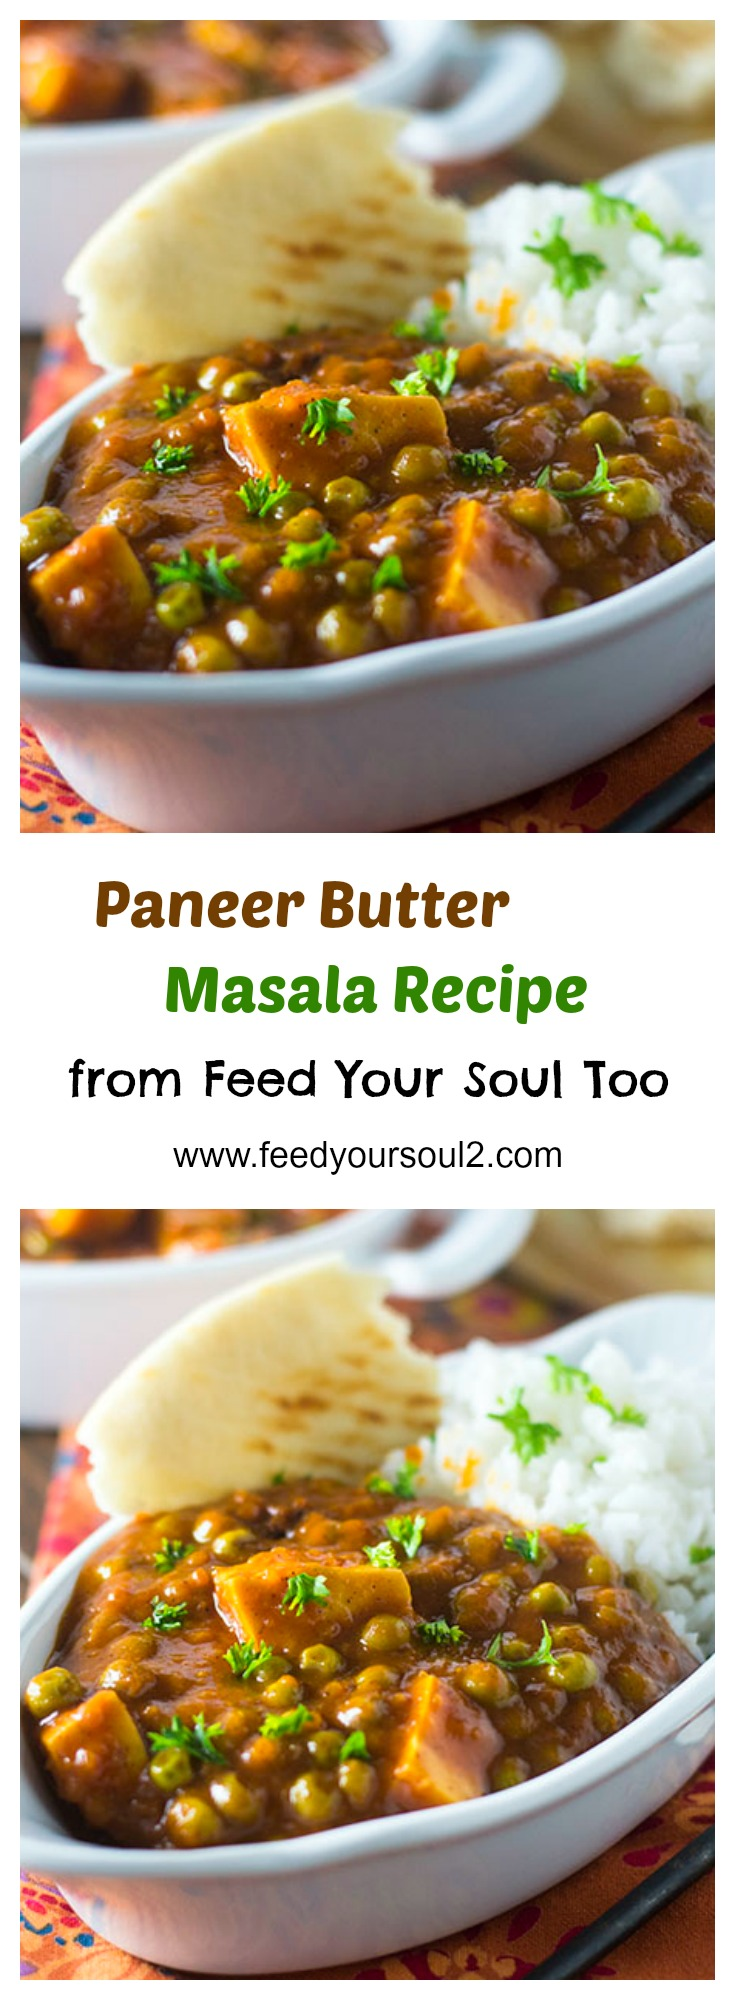 Paneer Butter Masala Recipe #vegetarian #Indian #paneer | feedyoursoul2.com